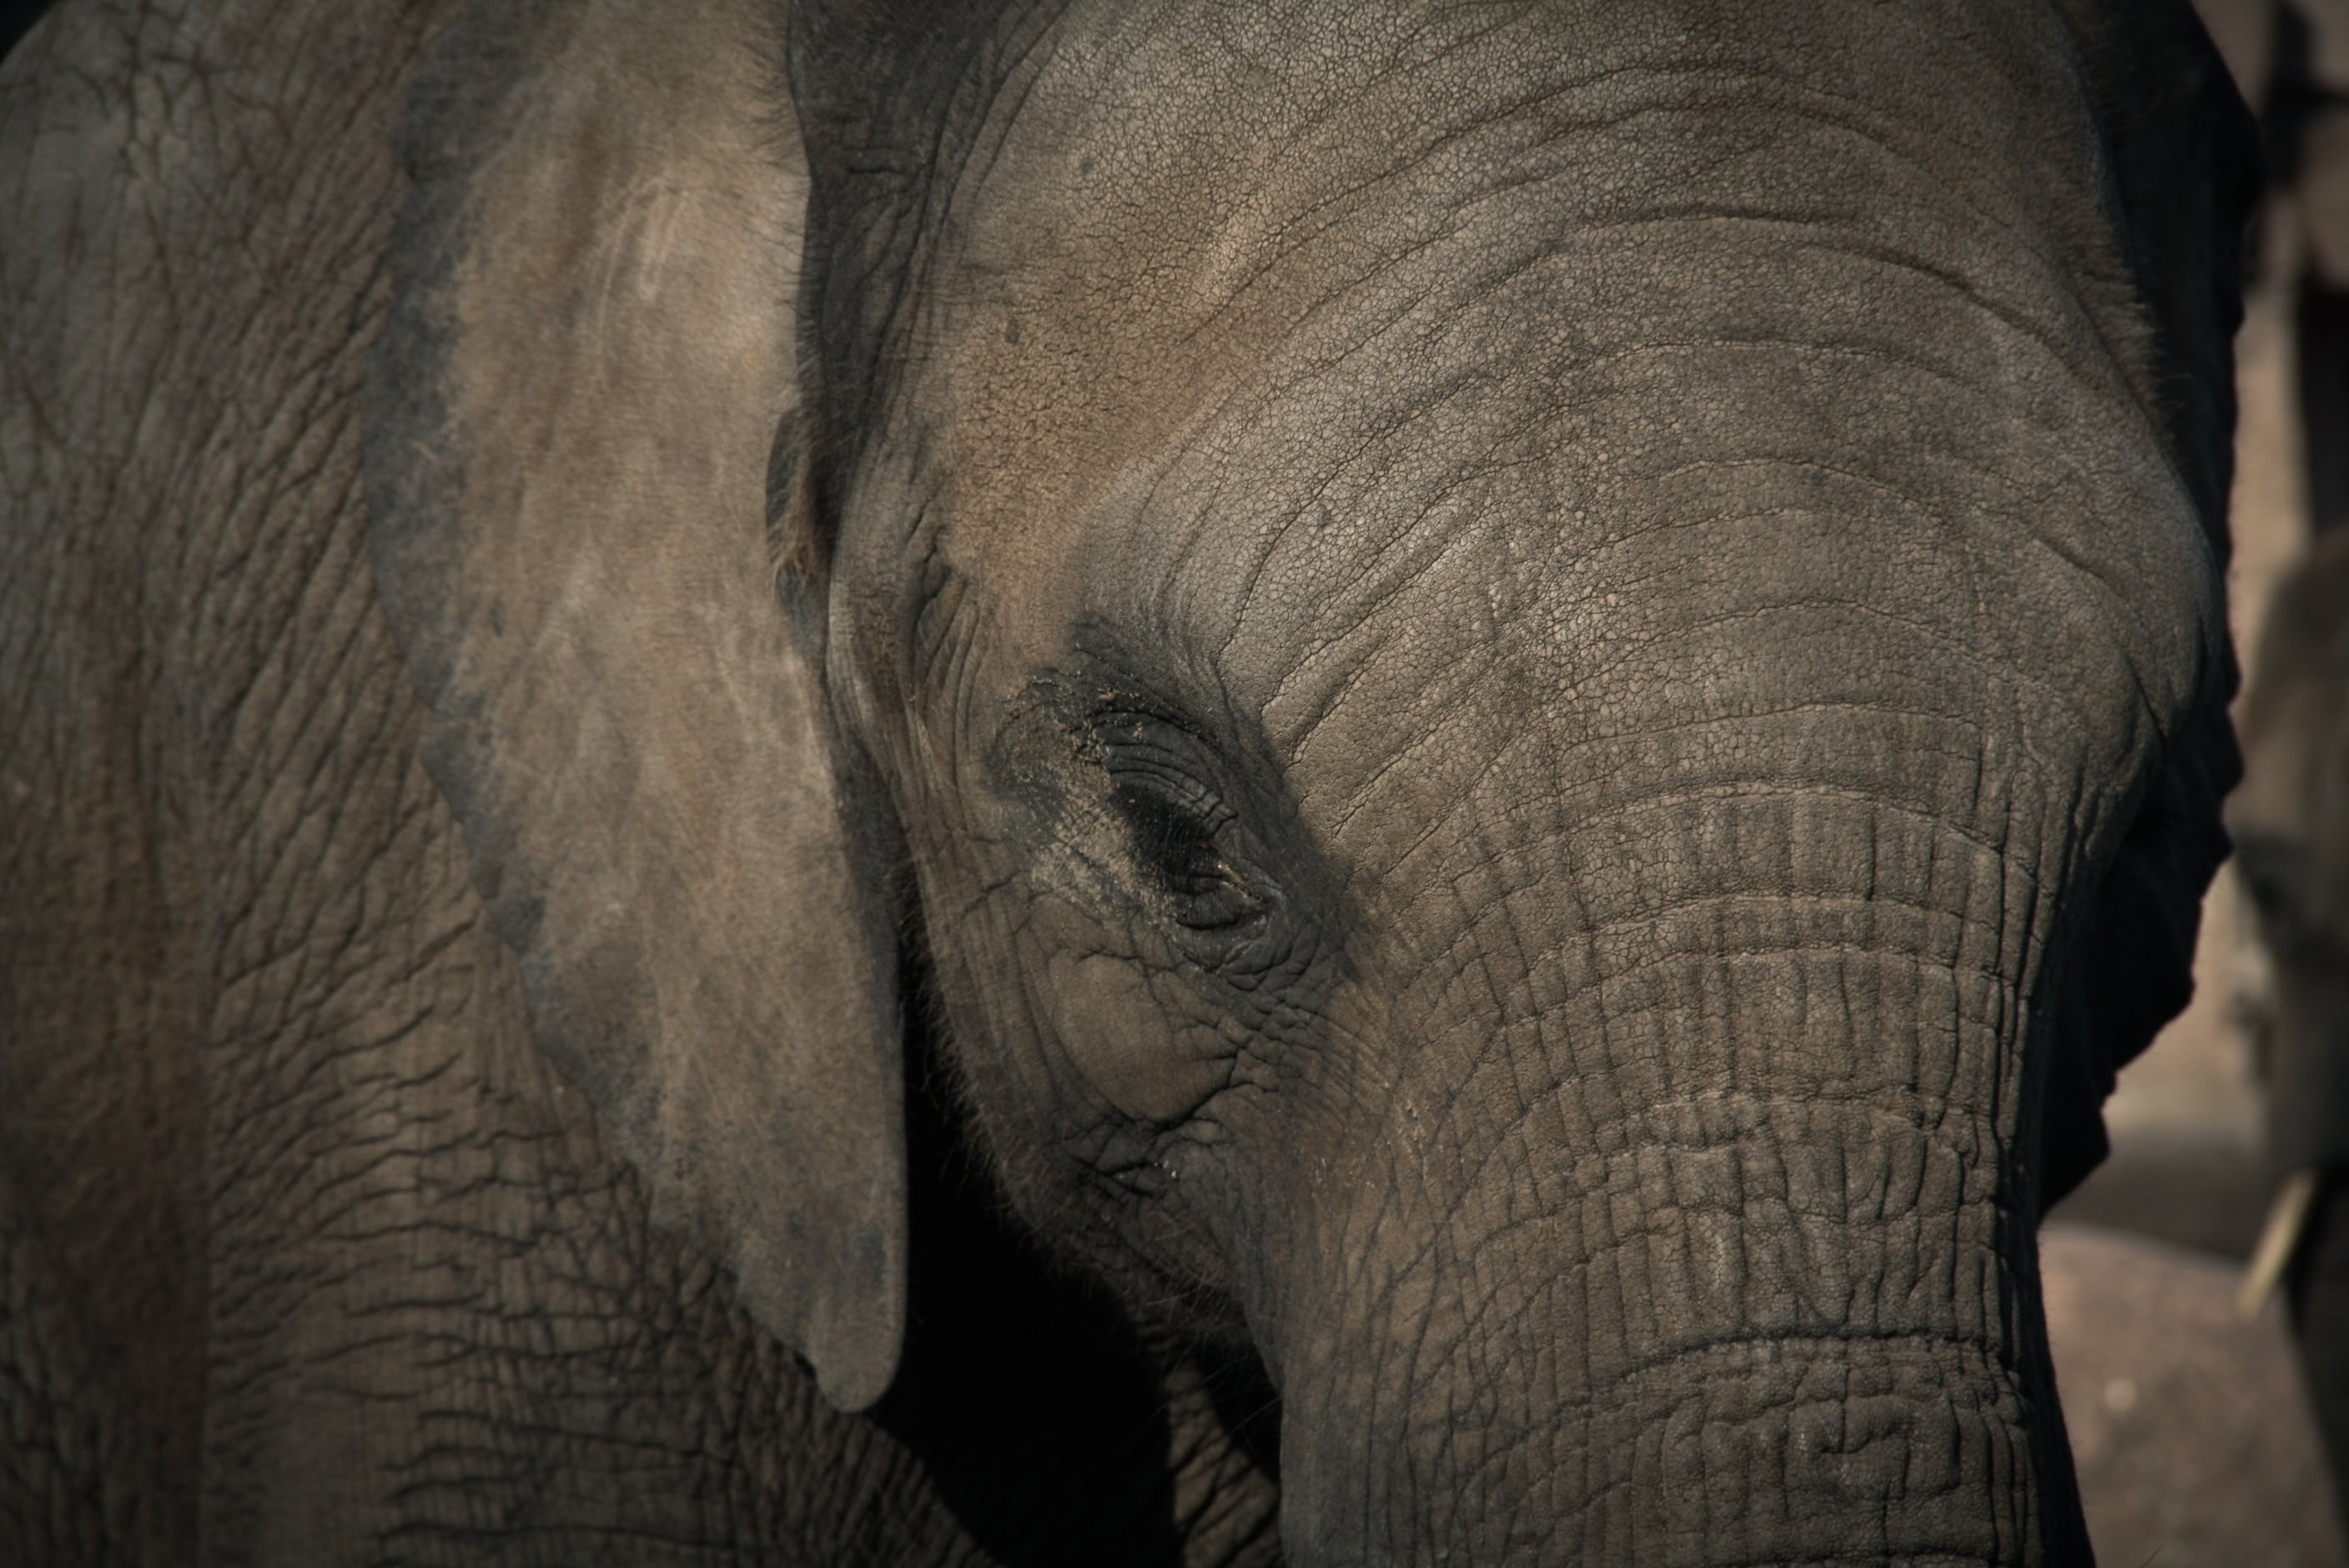 Free stock photo of animal, wildlife, close-up, elephant